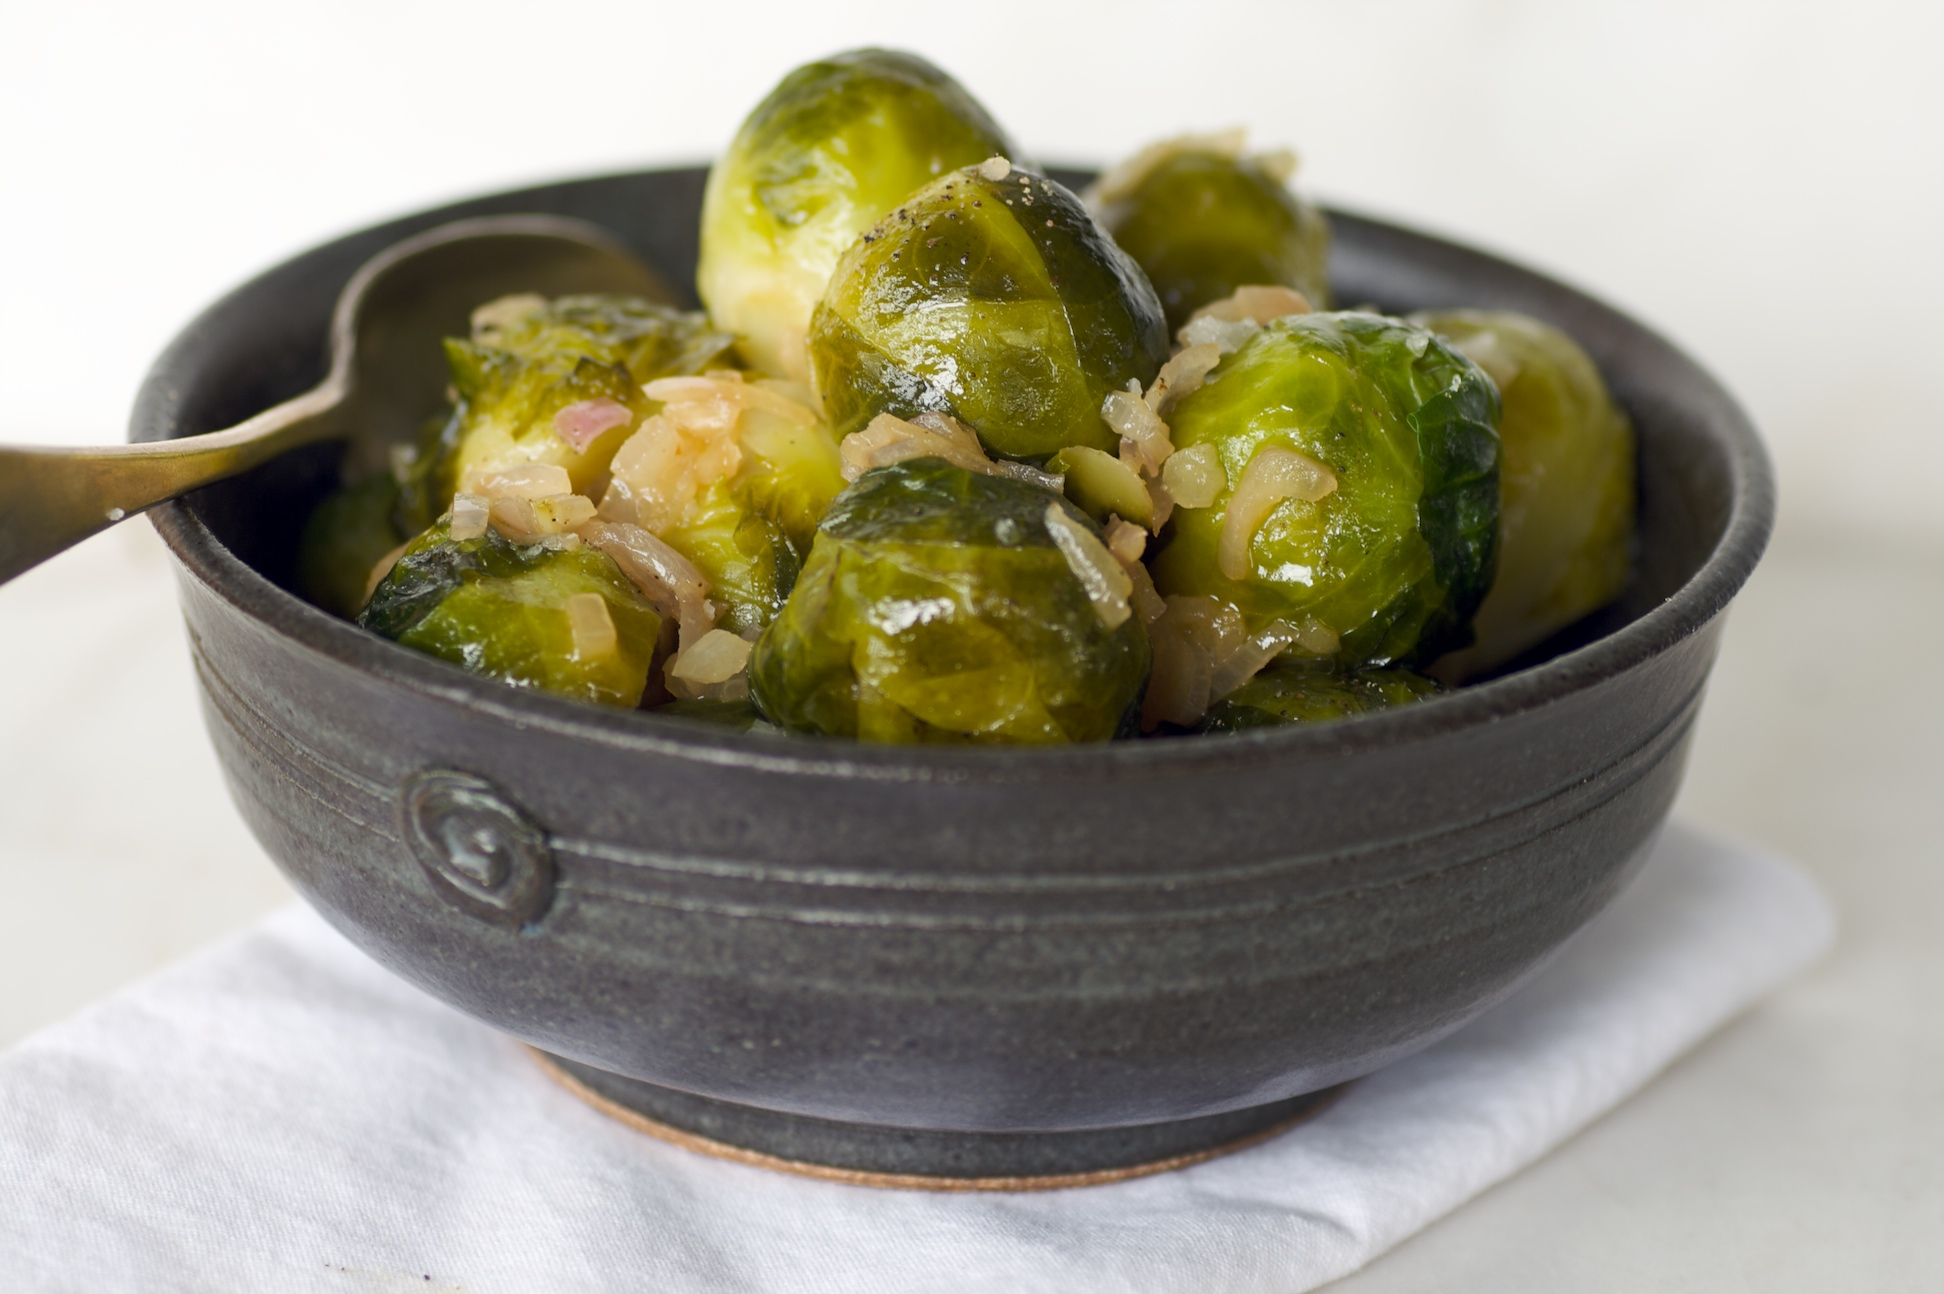 cooked Brussells sprouts